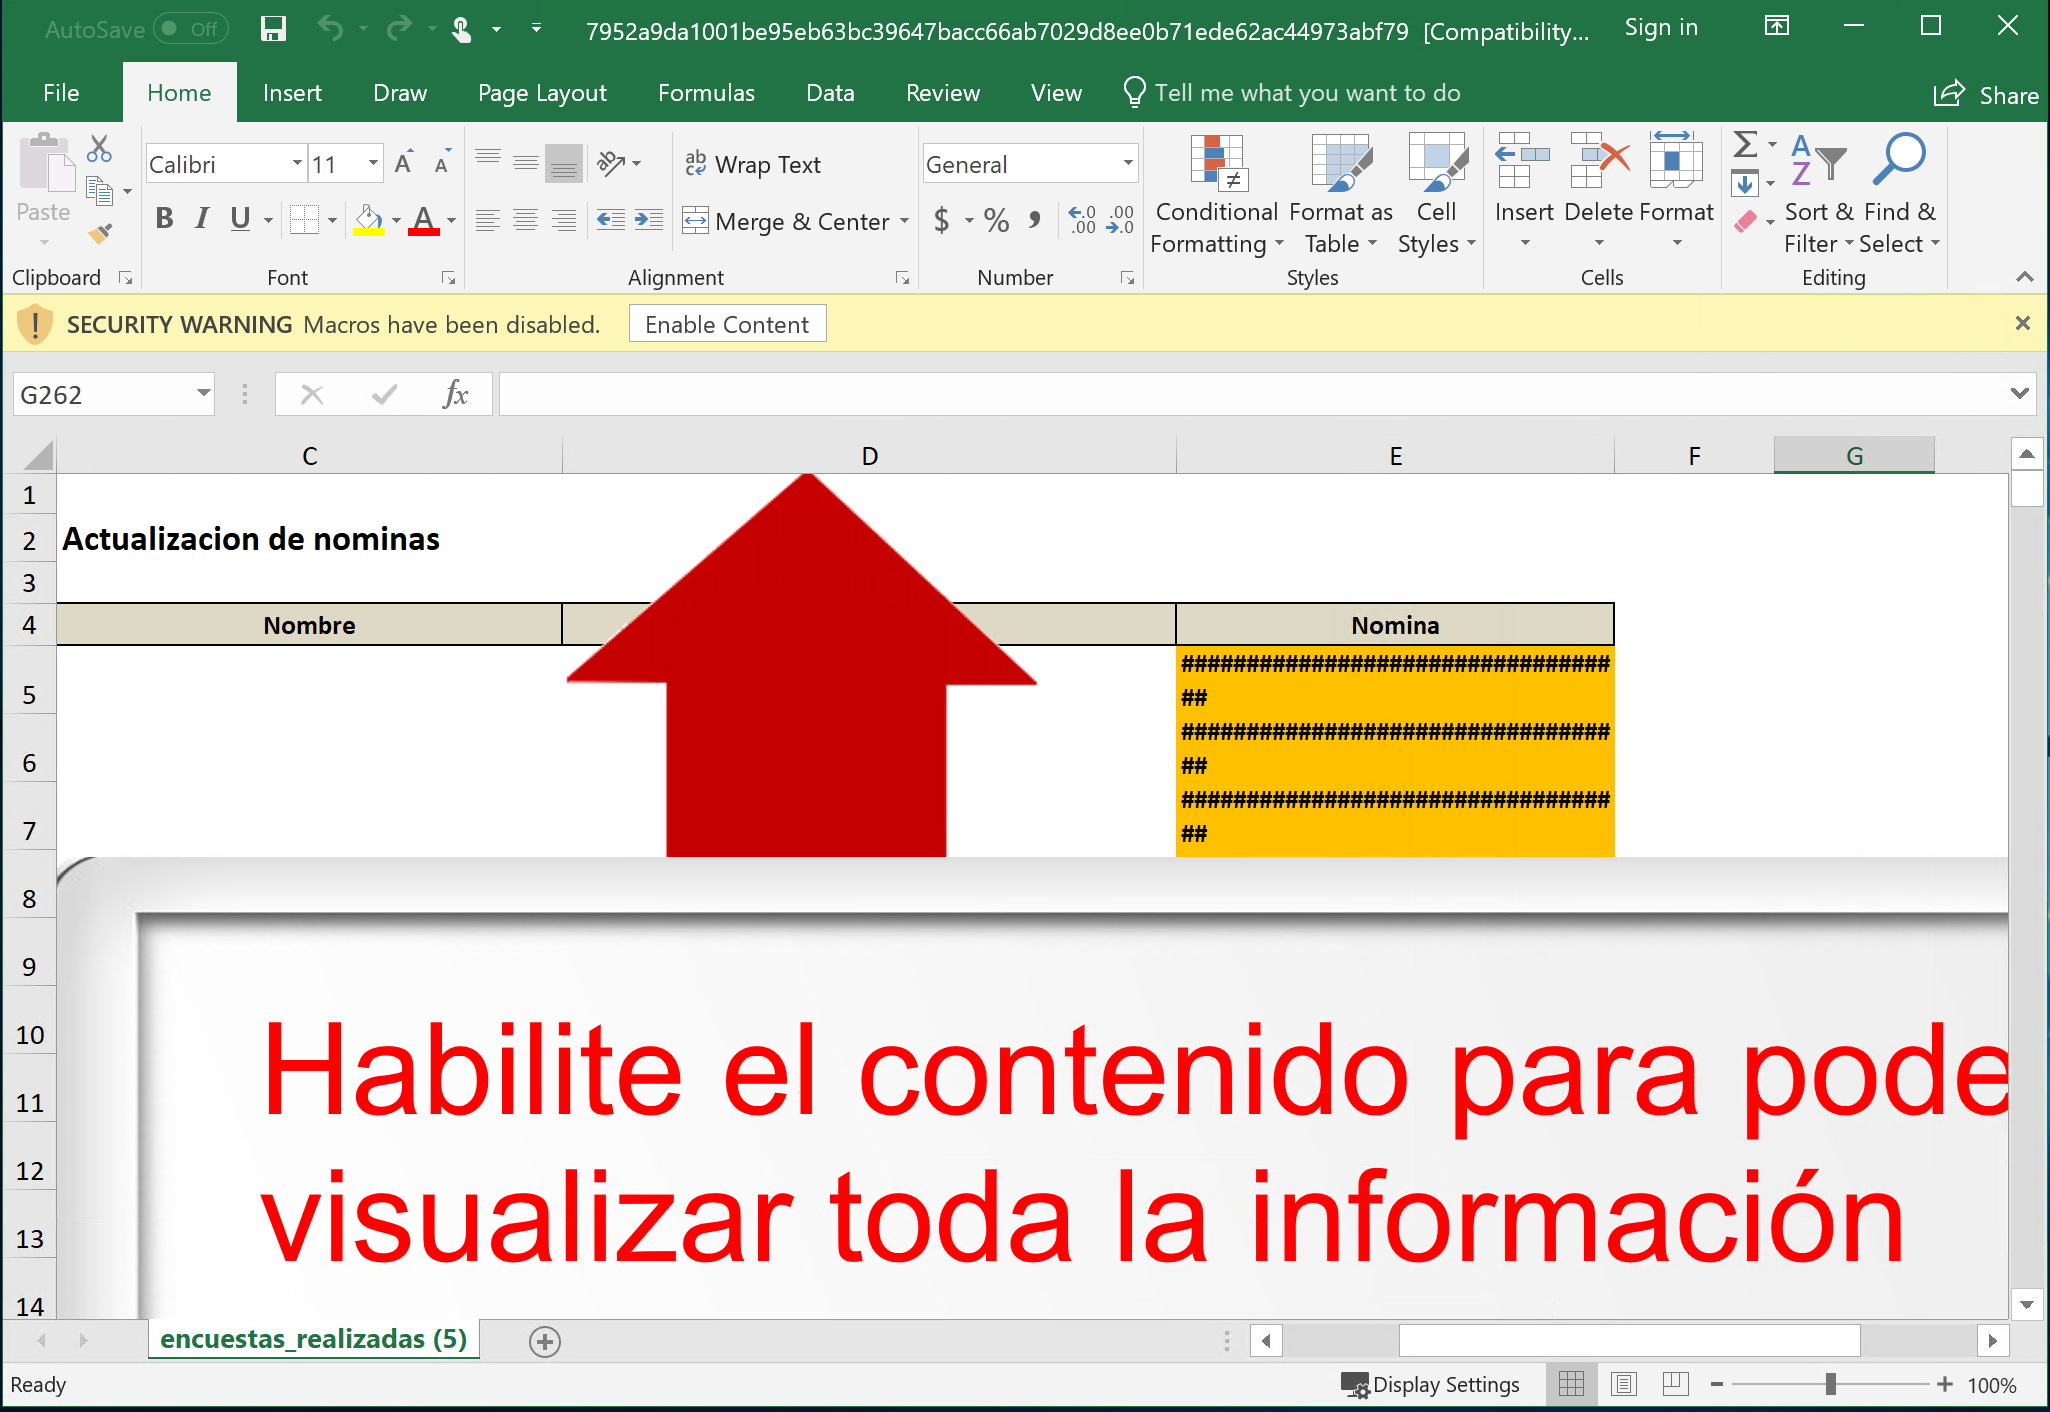 Malicious Excel file with instructions to enable content.